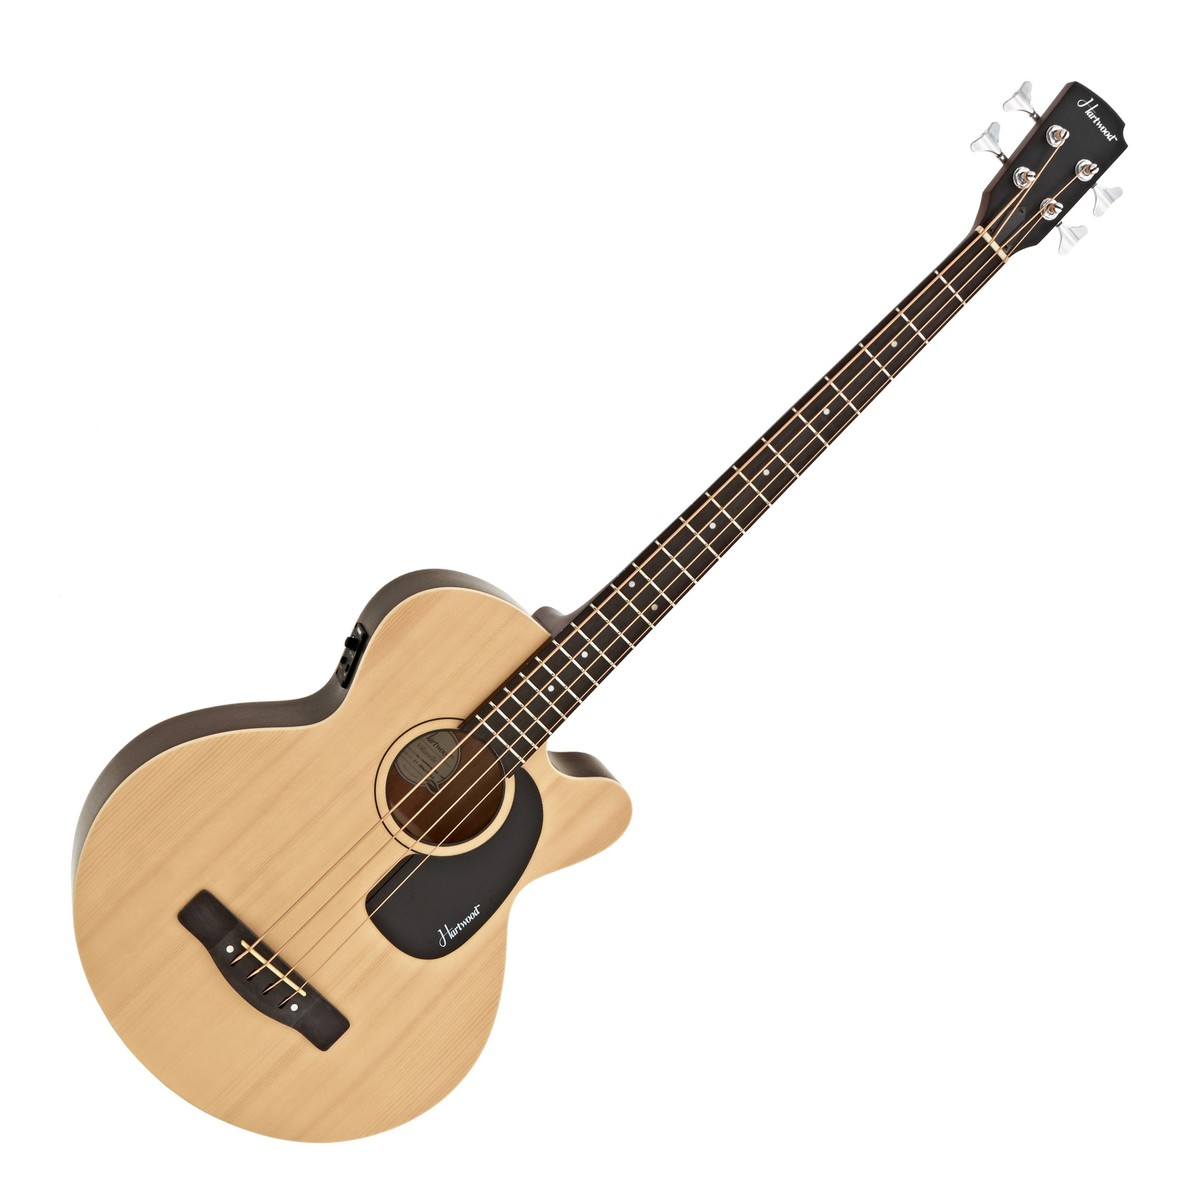 hartwood villanelle electro acoustic bass guitar at gear4music. Black Bedroom Furniture Sets. Home Design Ideas